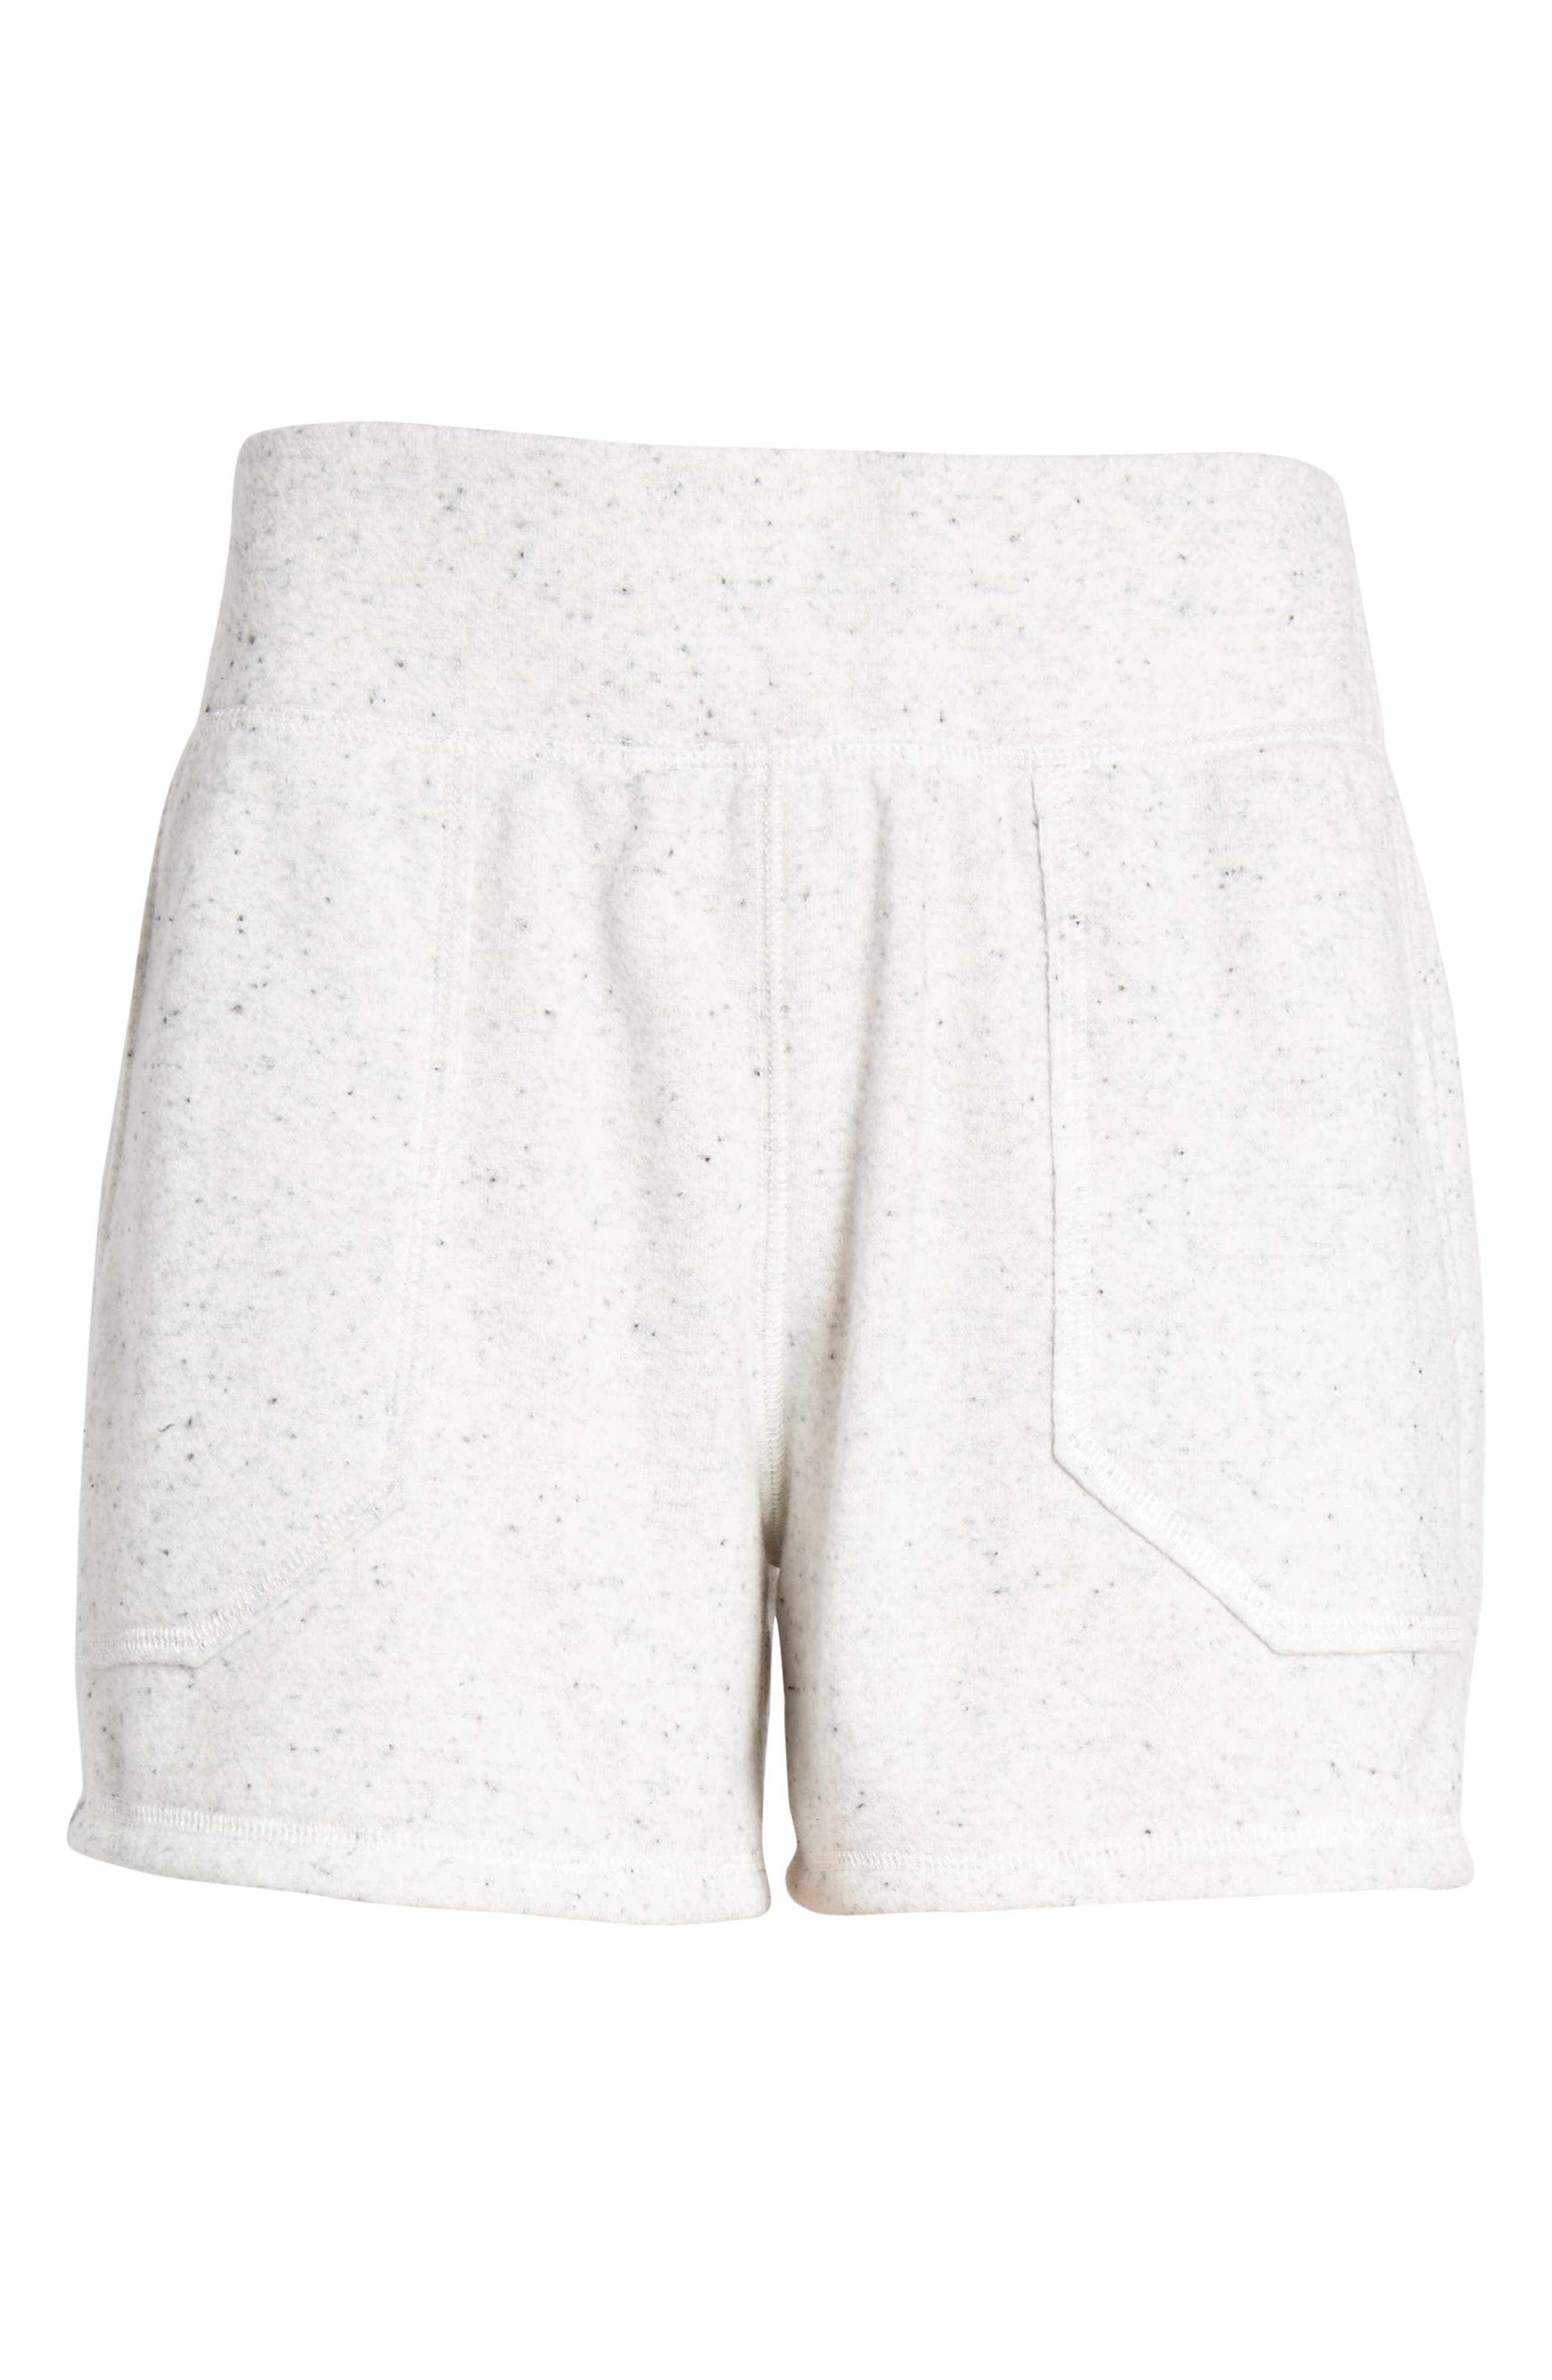 Off-Duty French Terry Shorts,                             Alternate thumbnail 28, color,